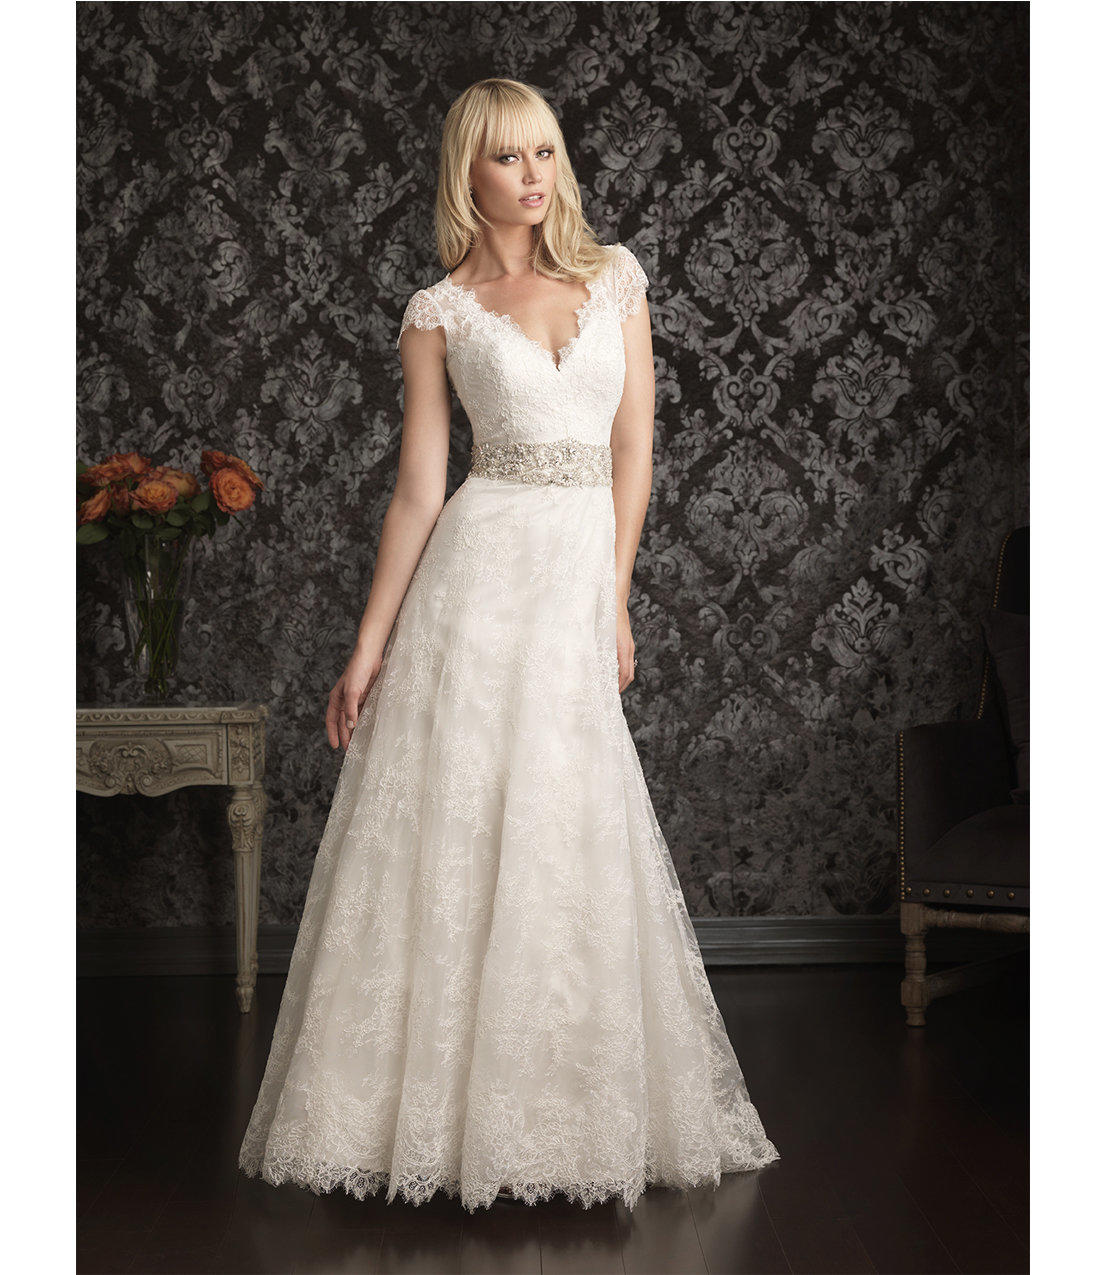 2013 Allure Bridal Ivory & Silver Lace from Unique Vintage